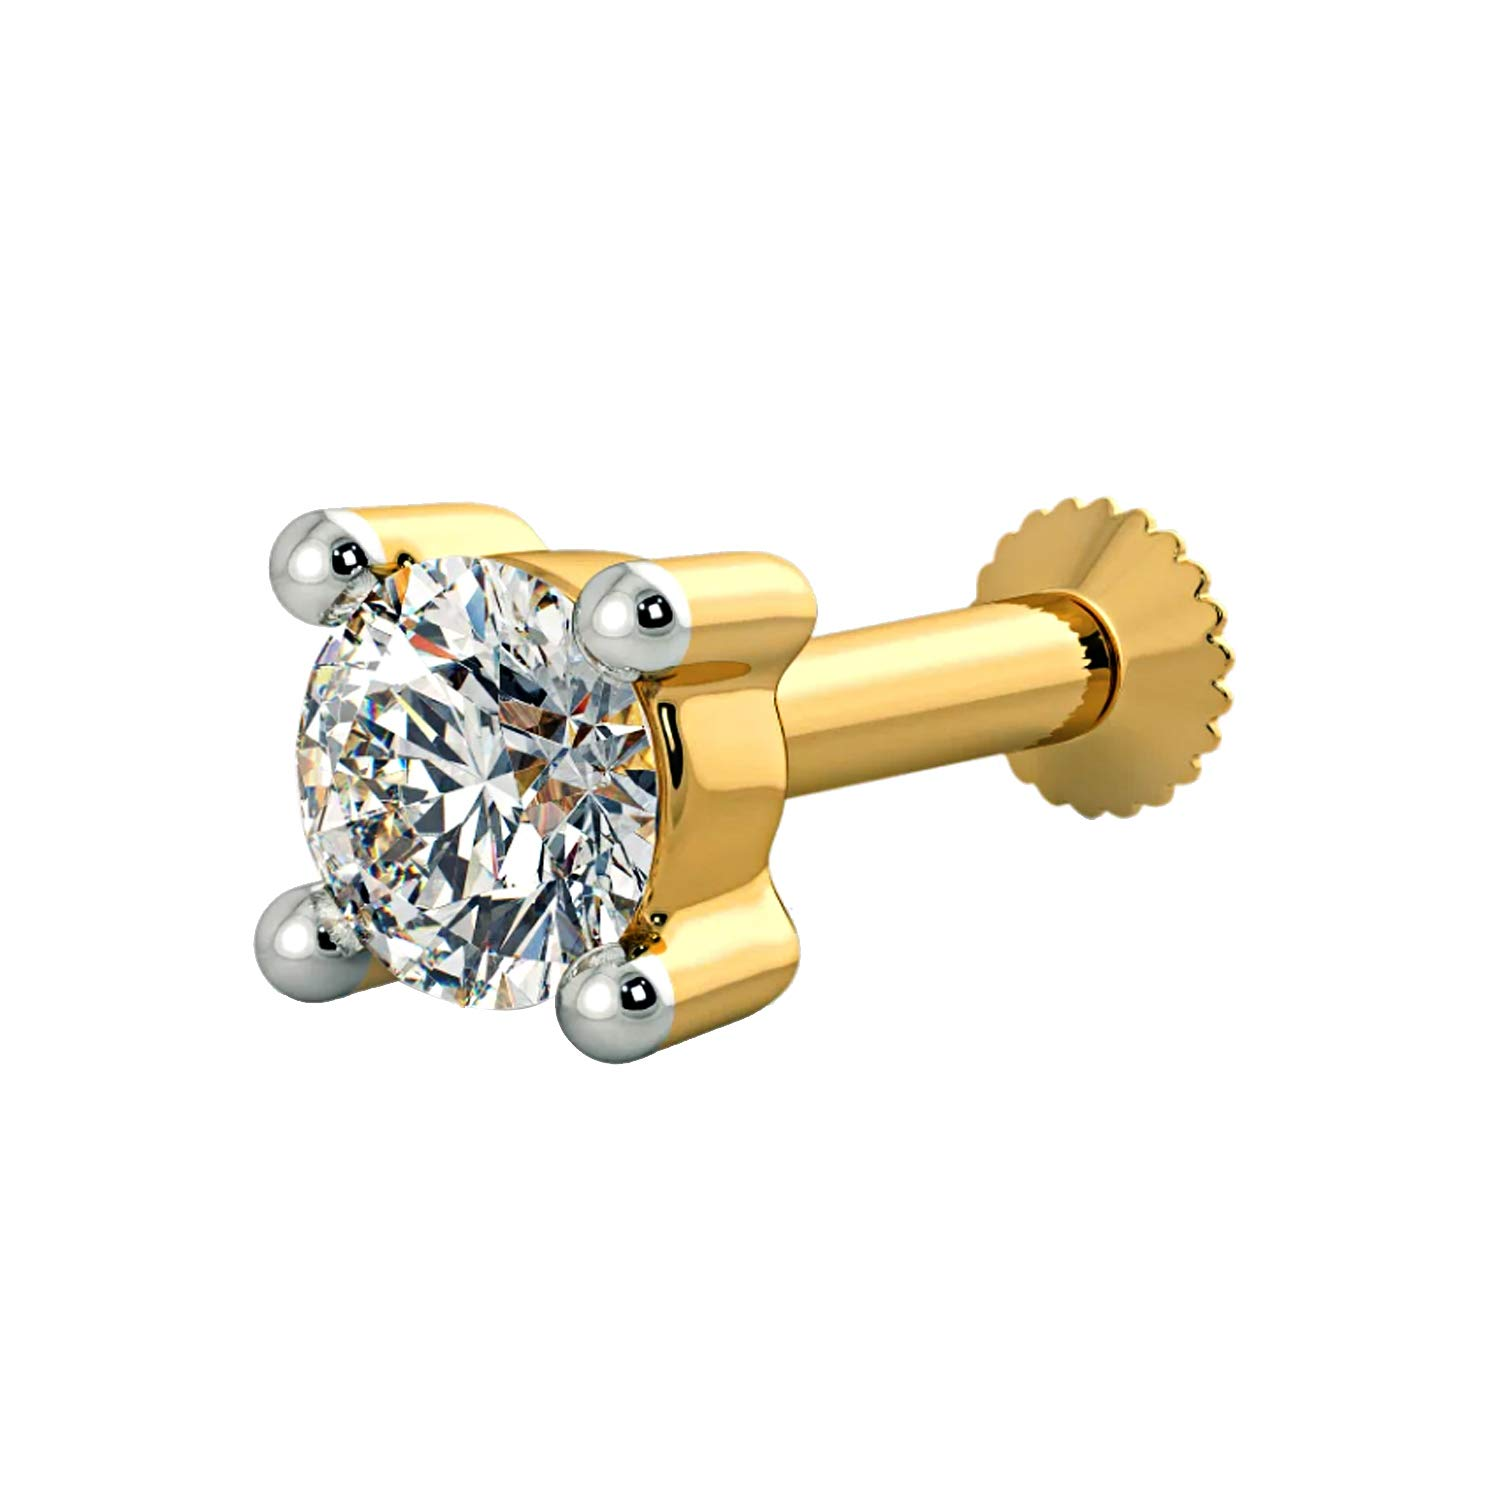 House of Kanak LLC 0.20 Ct 3.8 mm Real Diamond 4 Prong Solid 14K Yellow Gold Screw Stud Nose Ring